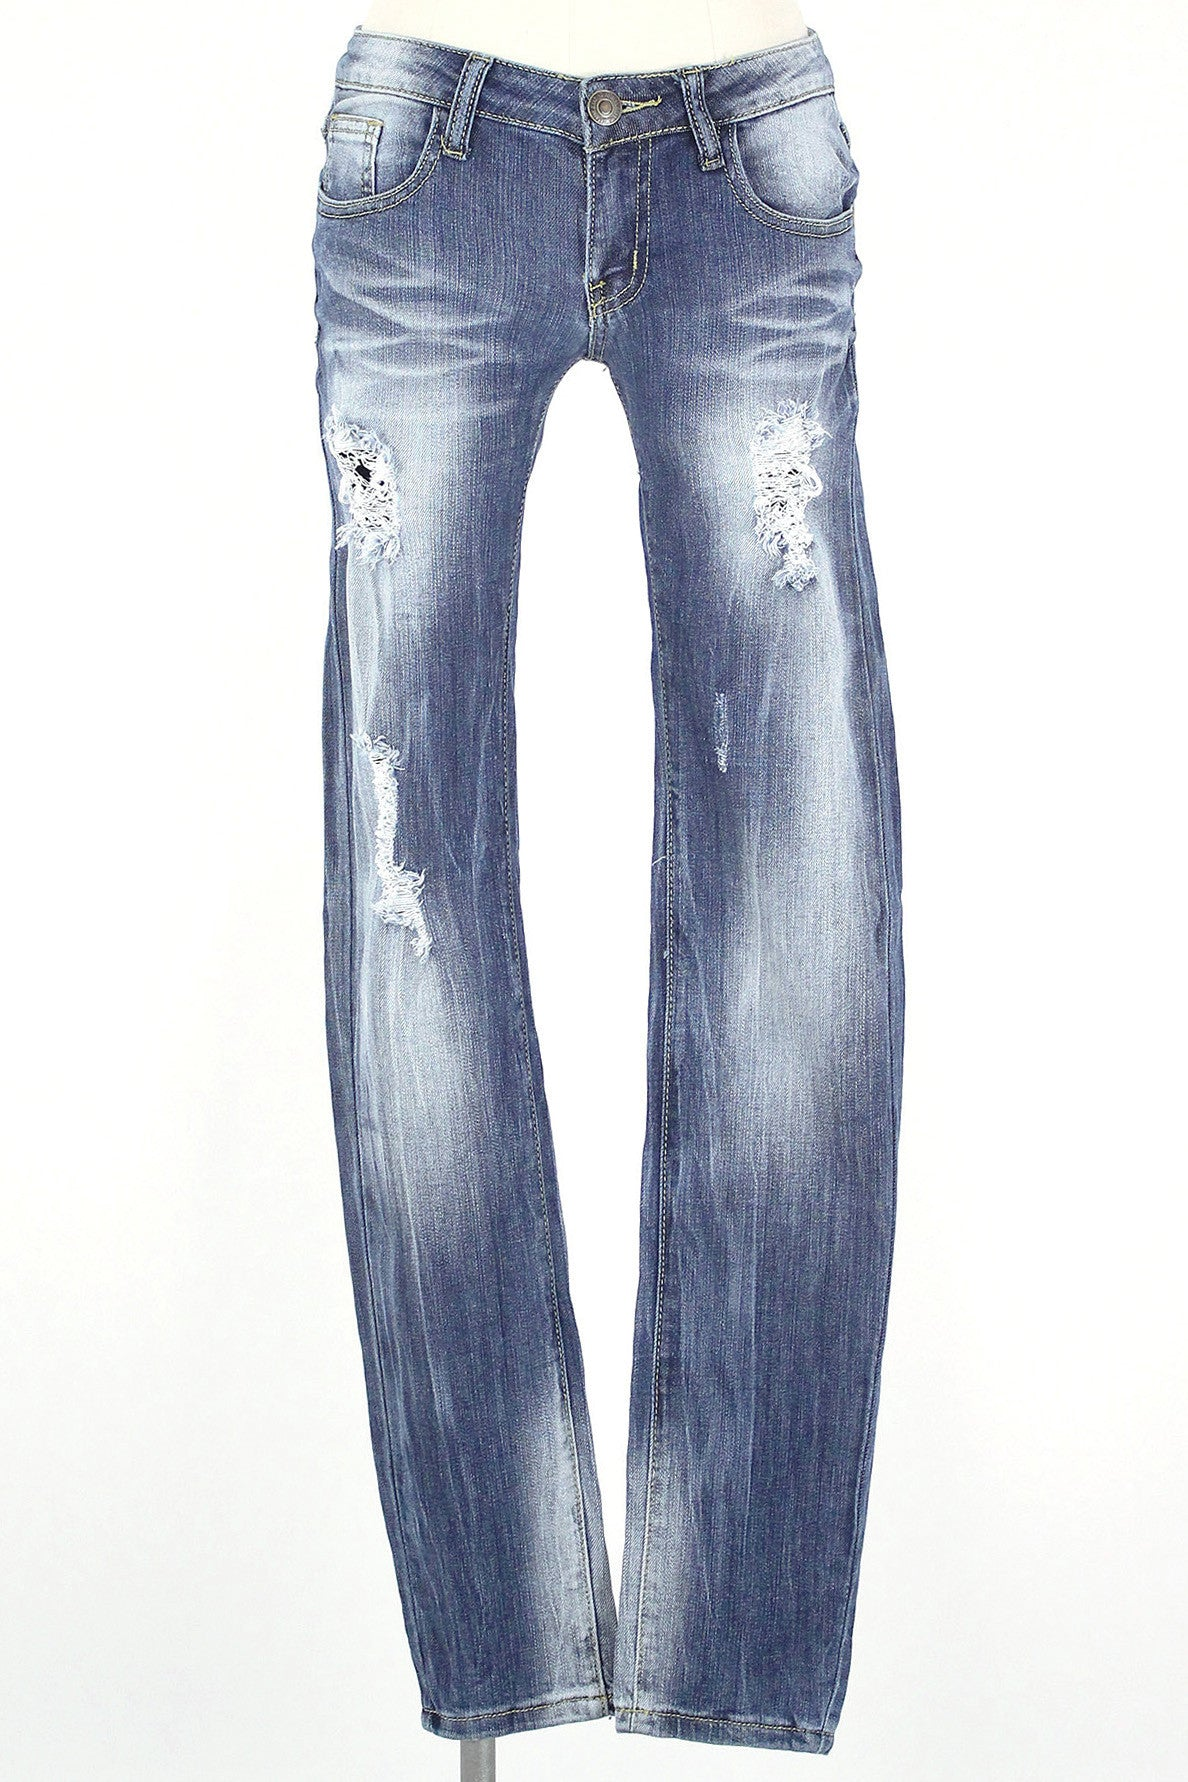 Slight Distressed Skinny Jean / Medium Wash